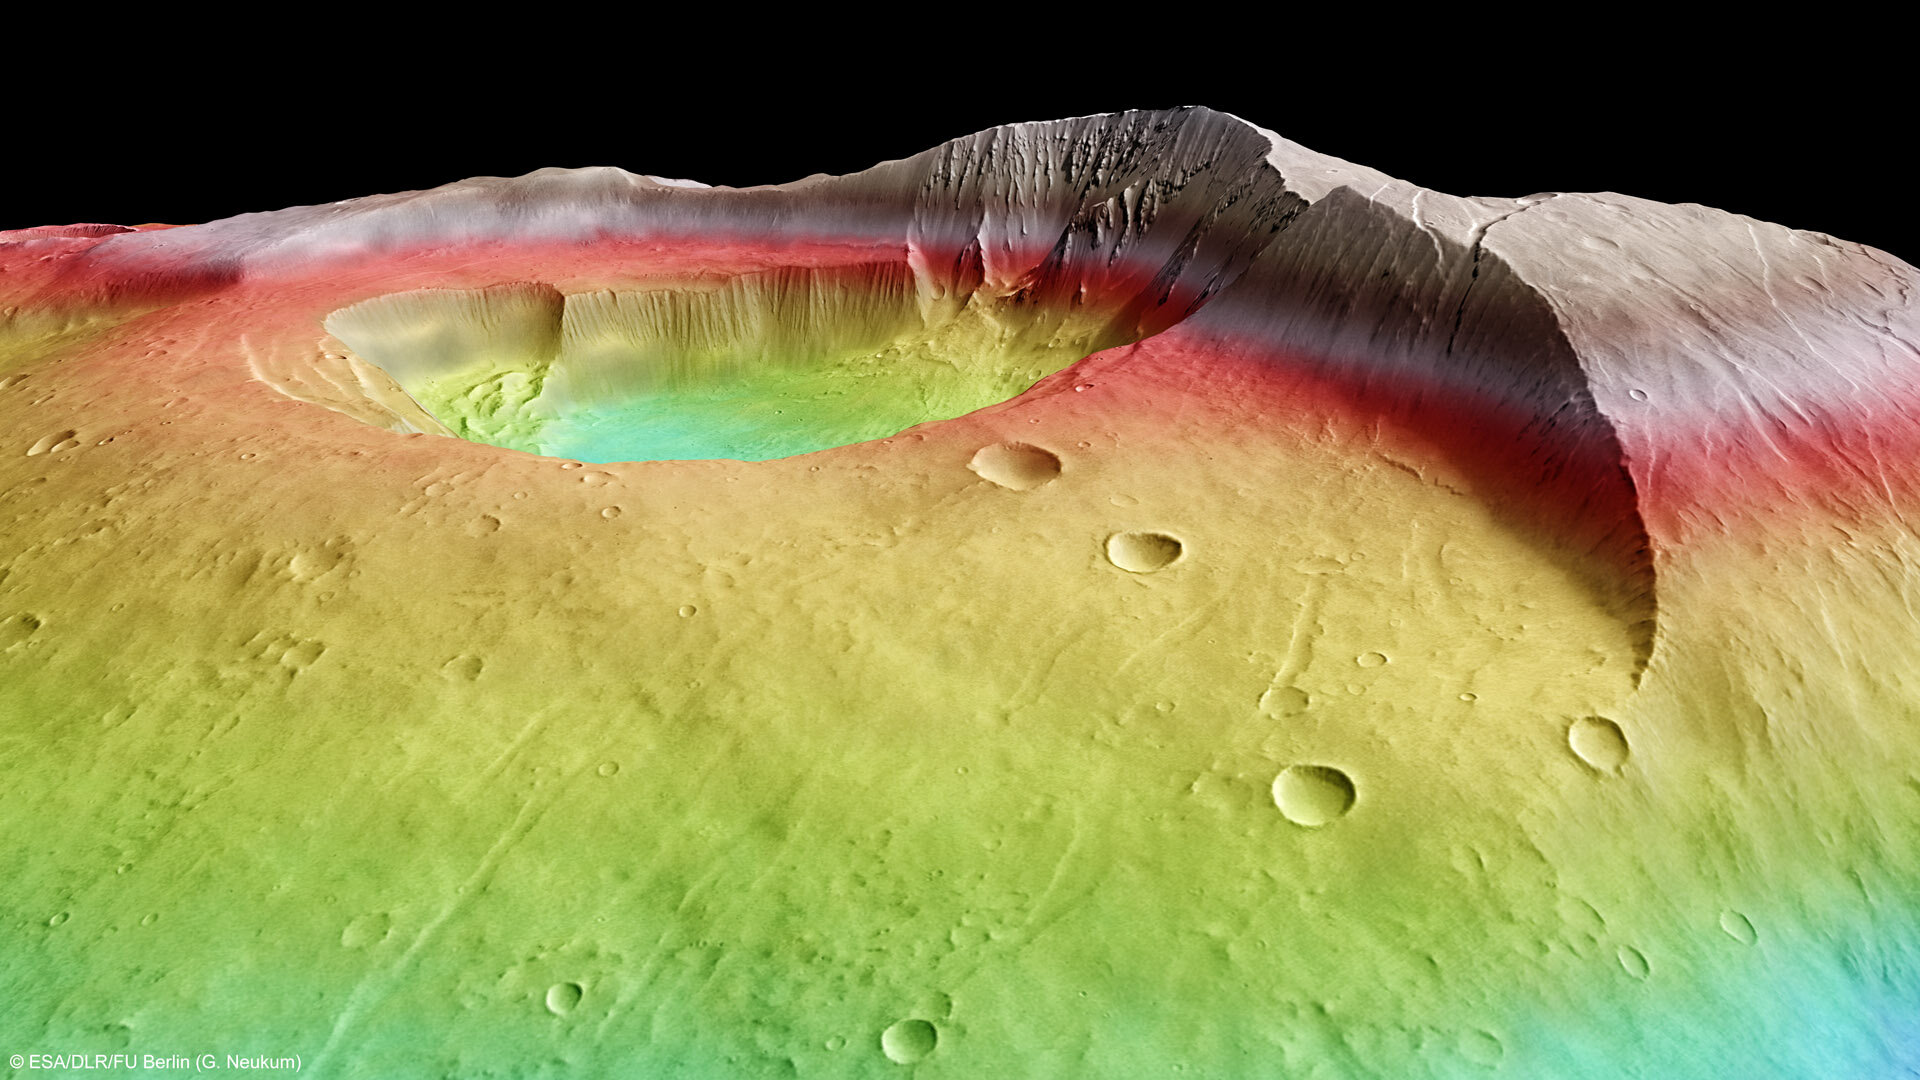 Tharsis Tholus in perspective